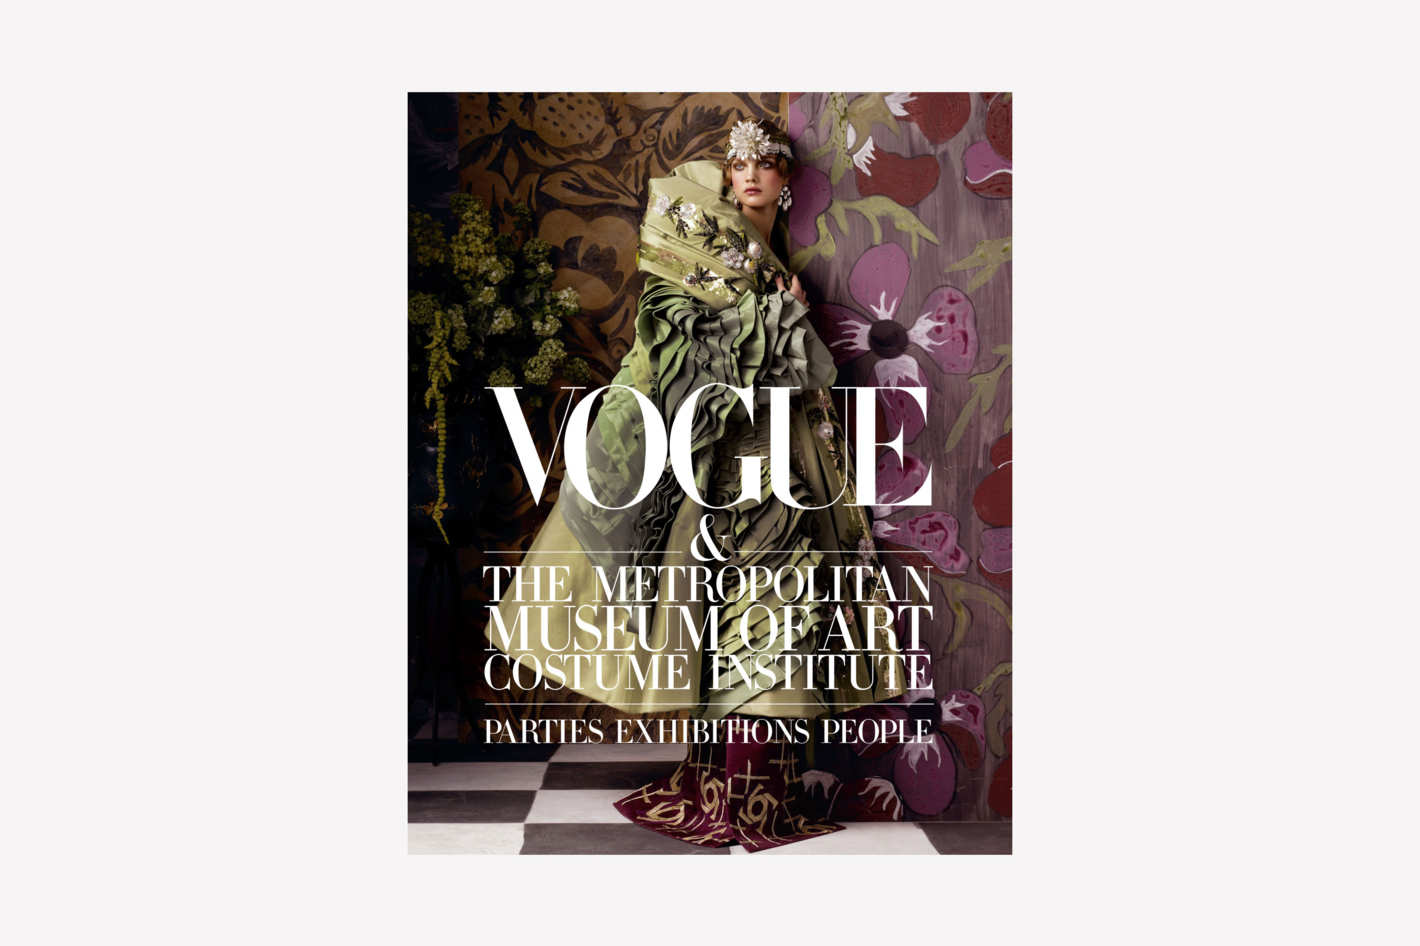 <em>Vogue and The Metropolitan Museum of Art Costume Institute: Parties, Exhibitions, People</em>